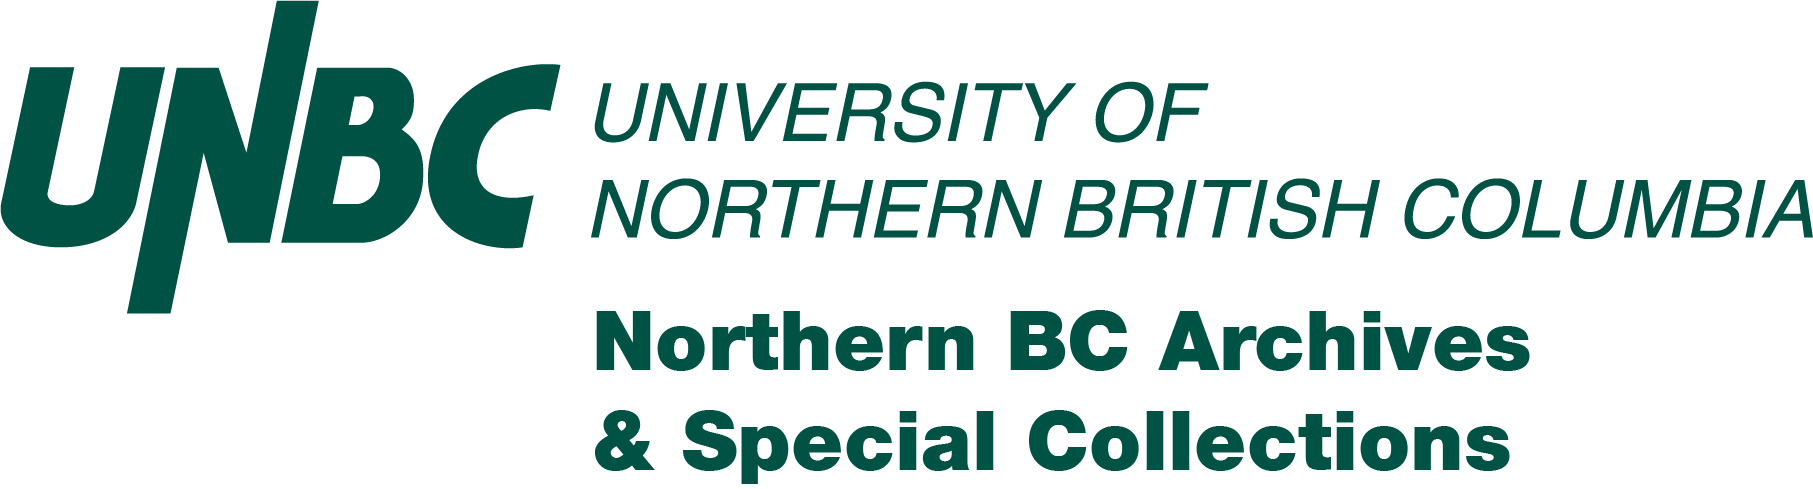 Northern BC Archives logo